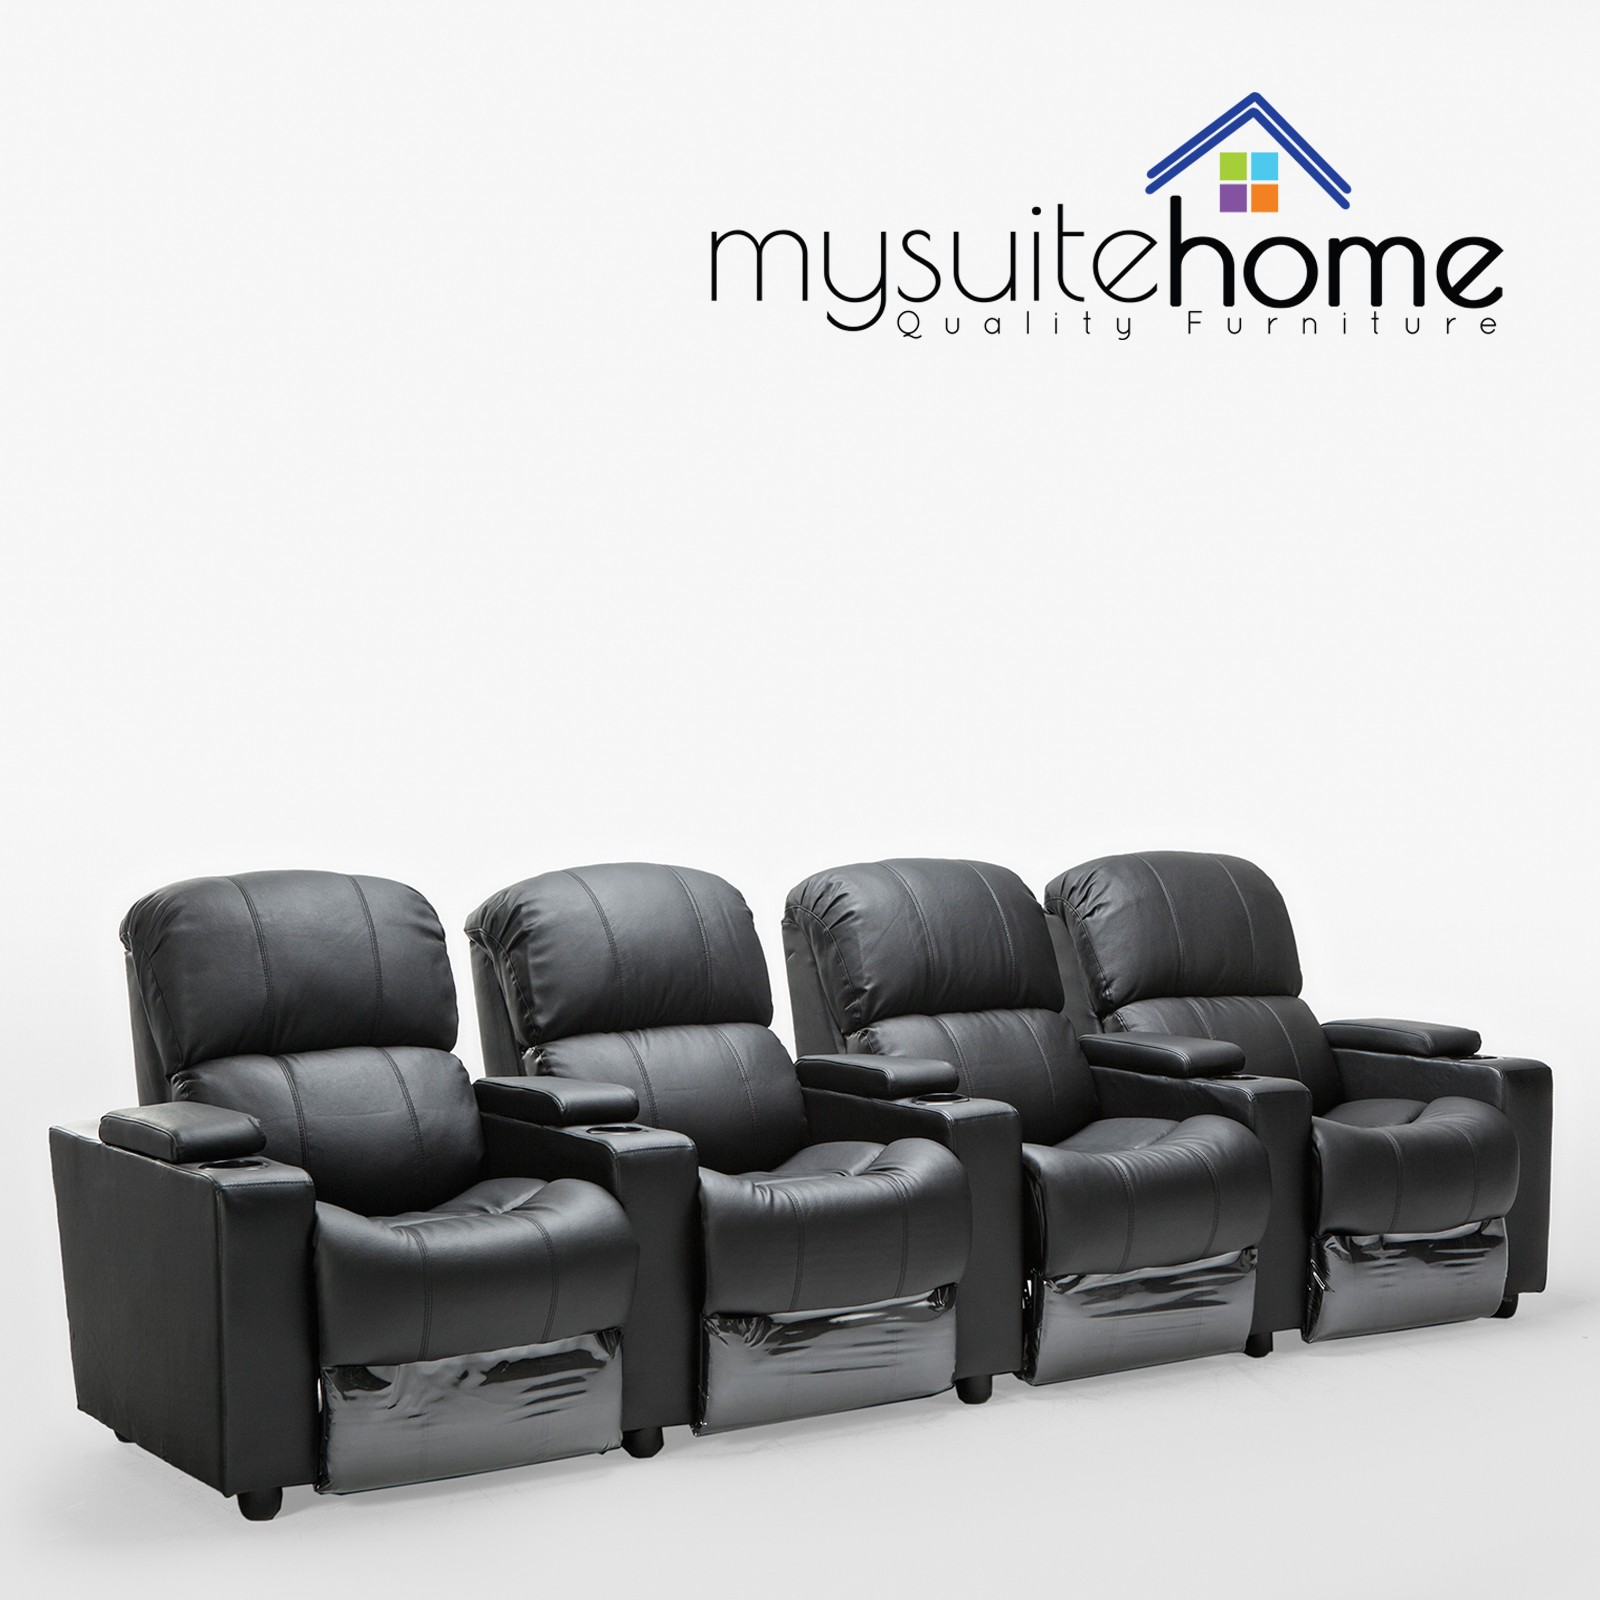 Sofa Bed Home Theater: Sophie Black Leather 4 Seater Home Theatre Recliner Lounge